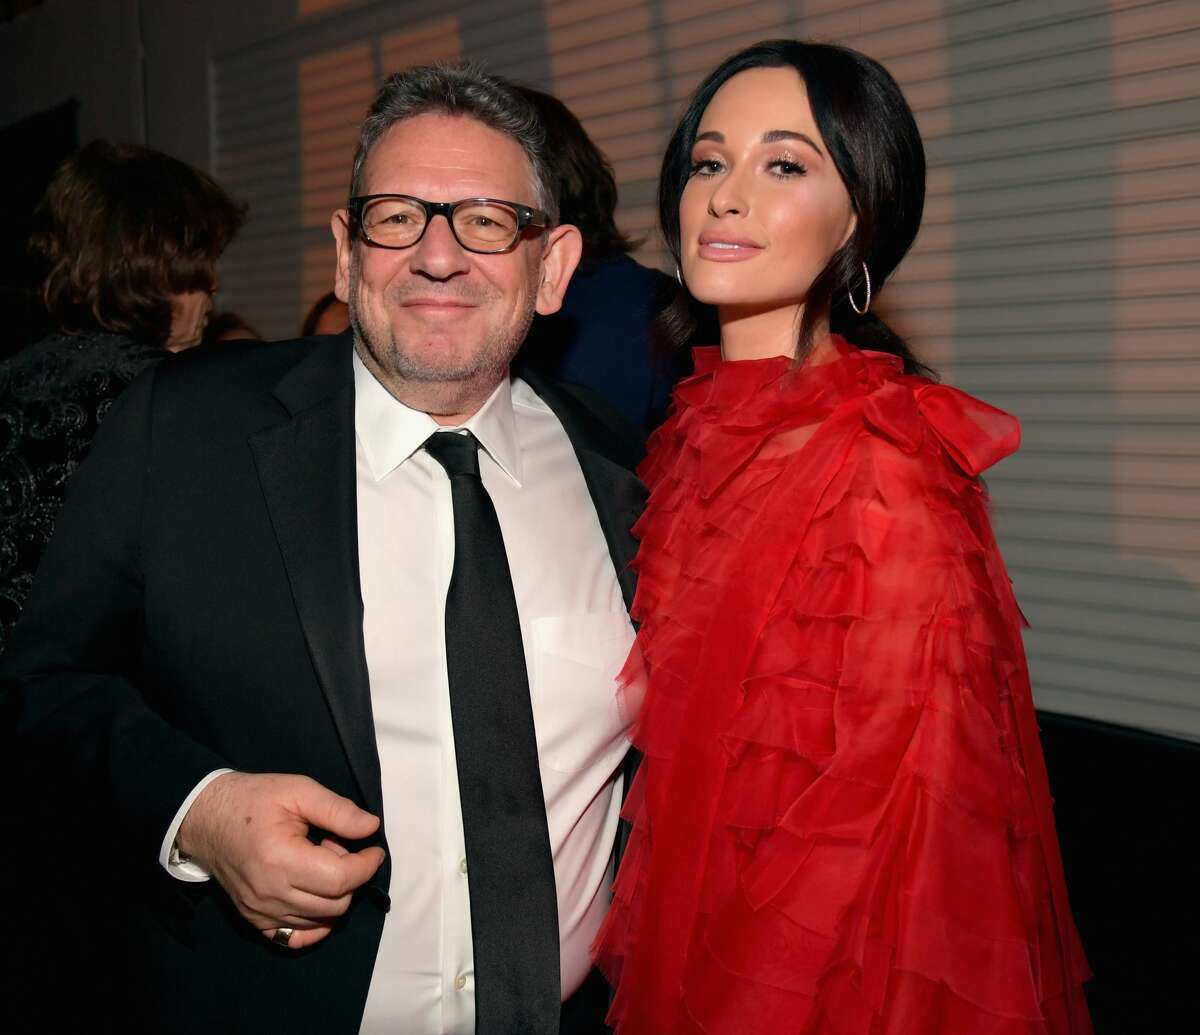 LOS ANGELES, CA - FEBRUARY 10: UMG Chairman & CEO Sir Lucian Grainge (L) and Kacey Musgraves attend Universal Music Group's 2019 After Party Presented by Citi Celebrates Music's Biggest Night on February 9, 2019 in Los Angeles, California.(Photo by Lester Cohen/Getty Images for Universal Music Group)